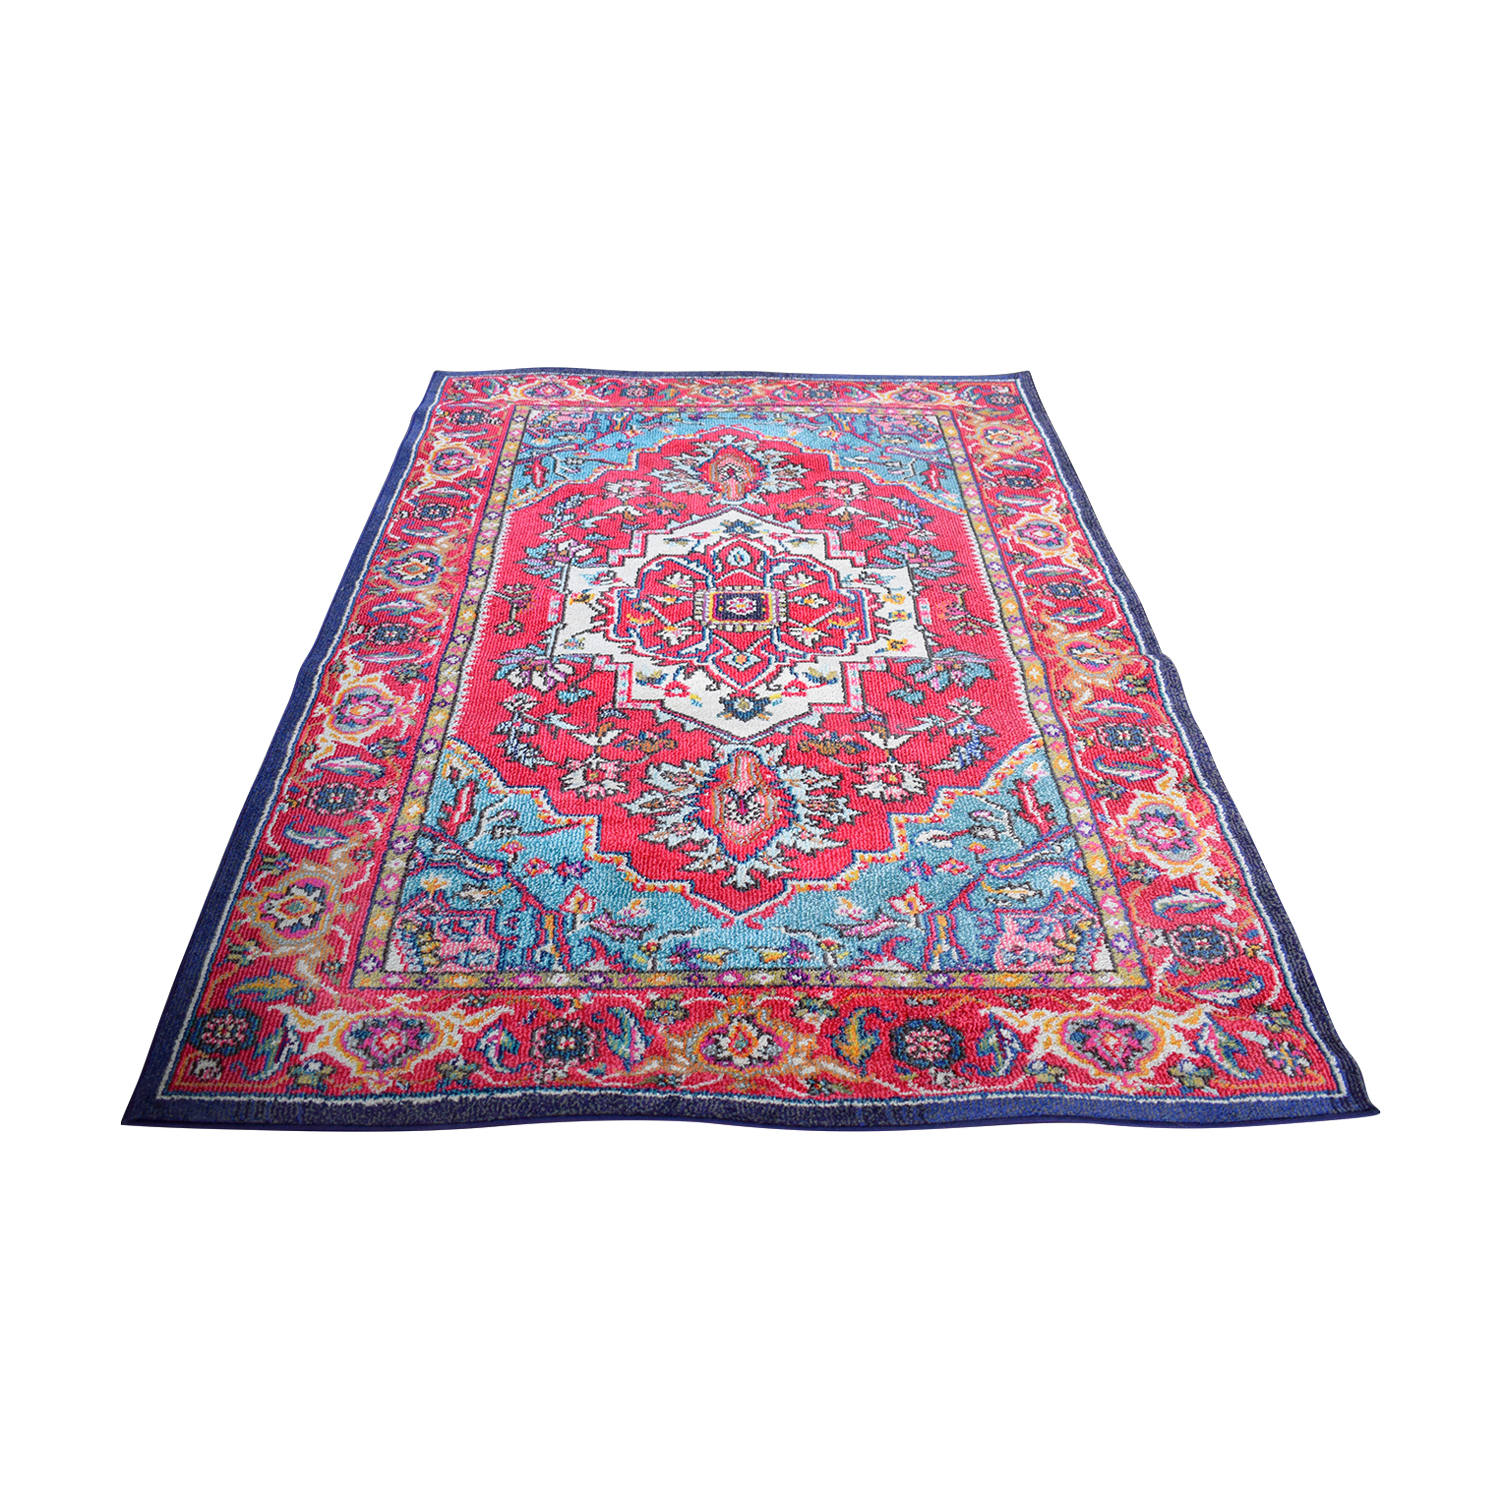 Safavieh Safavieh Monaco Oriental Bohemian Red and Turquoise Rug coupon